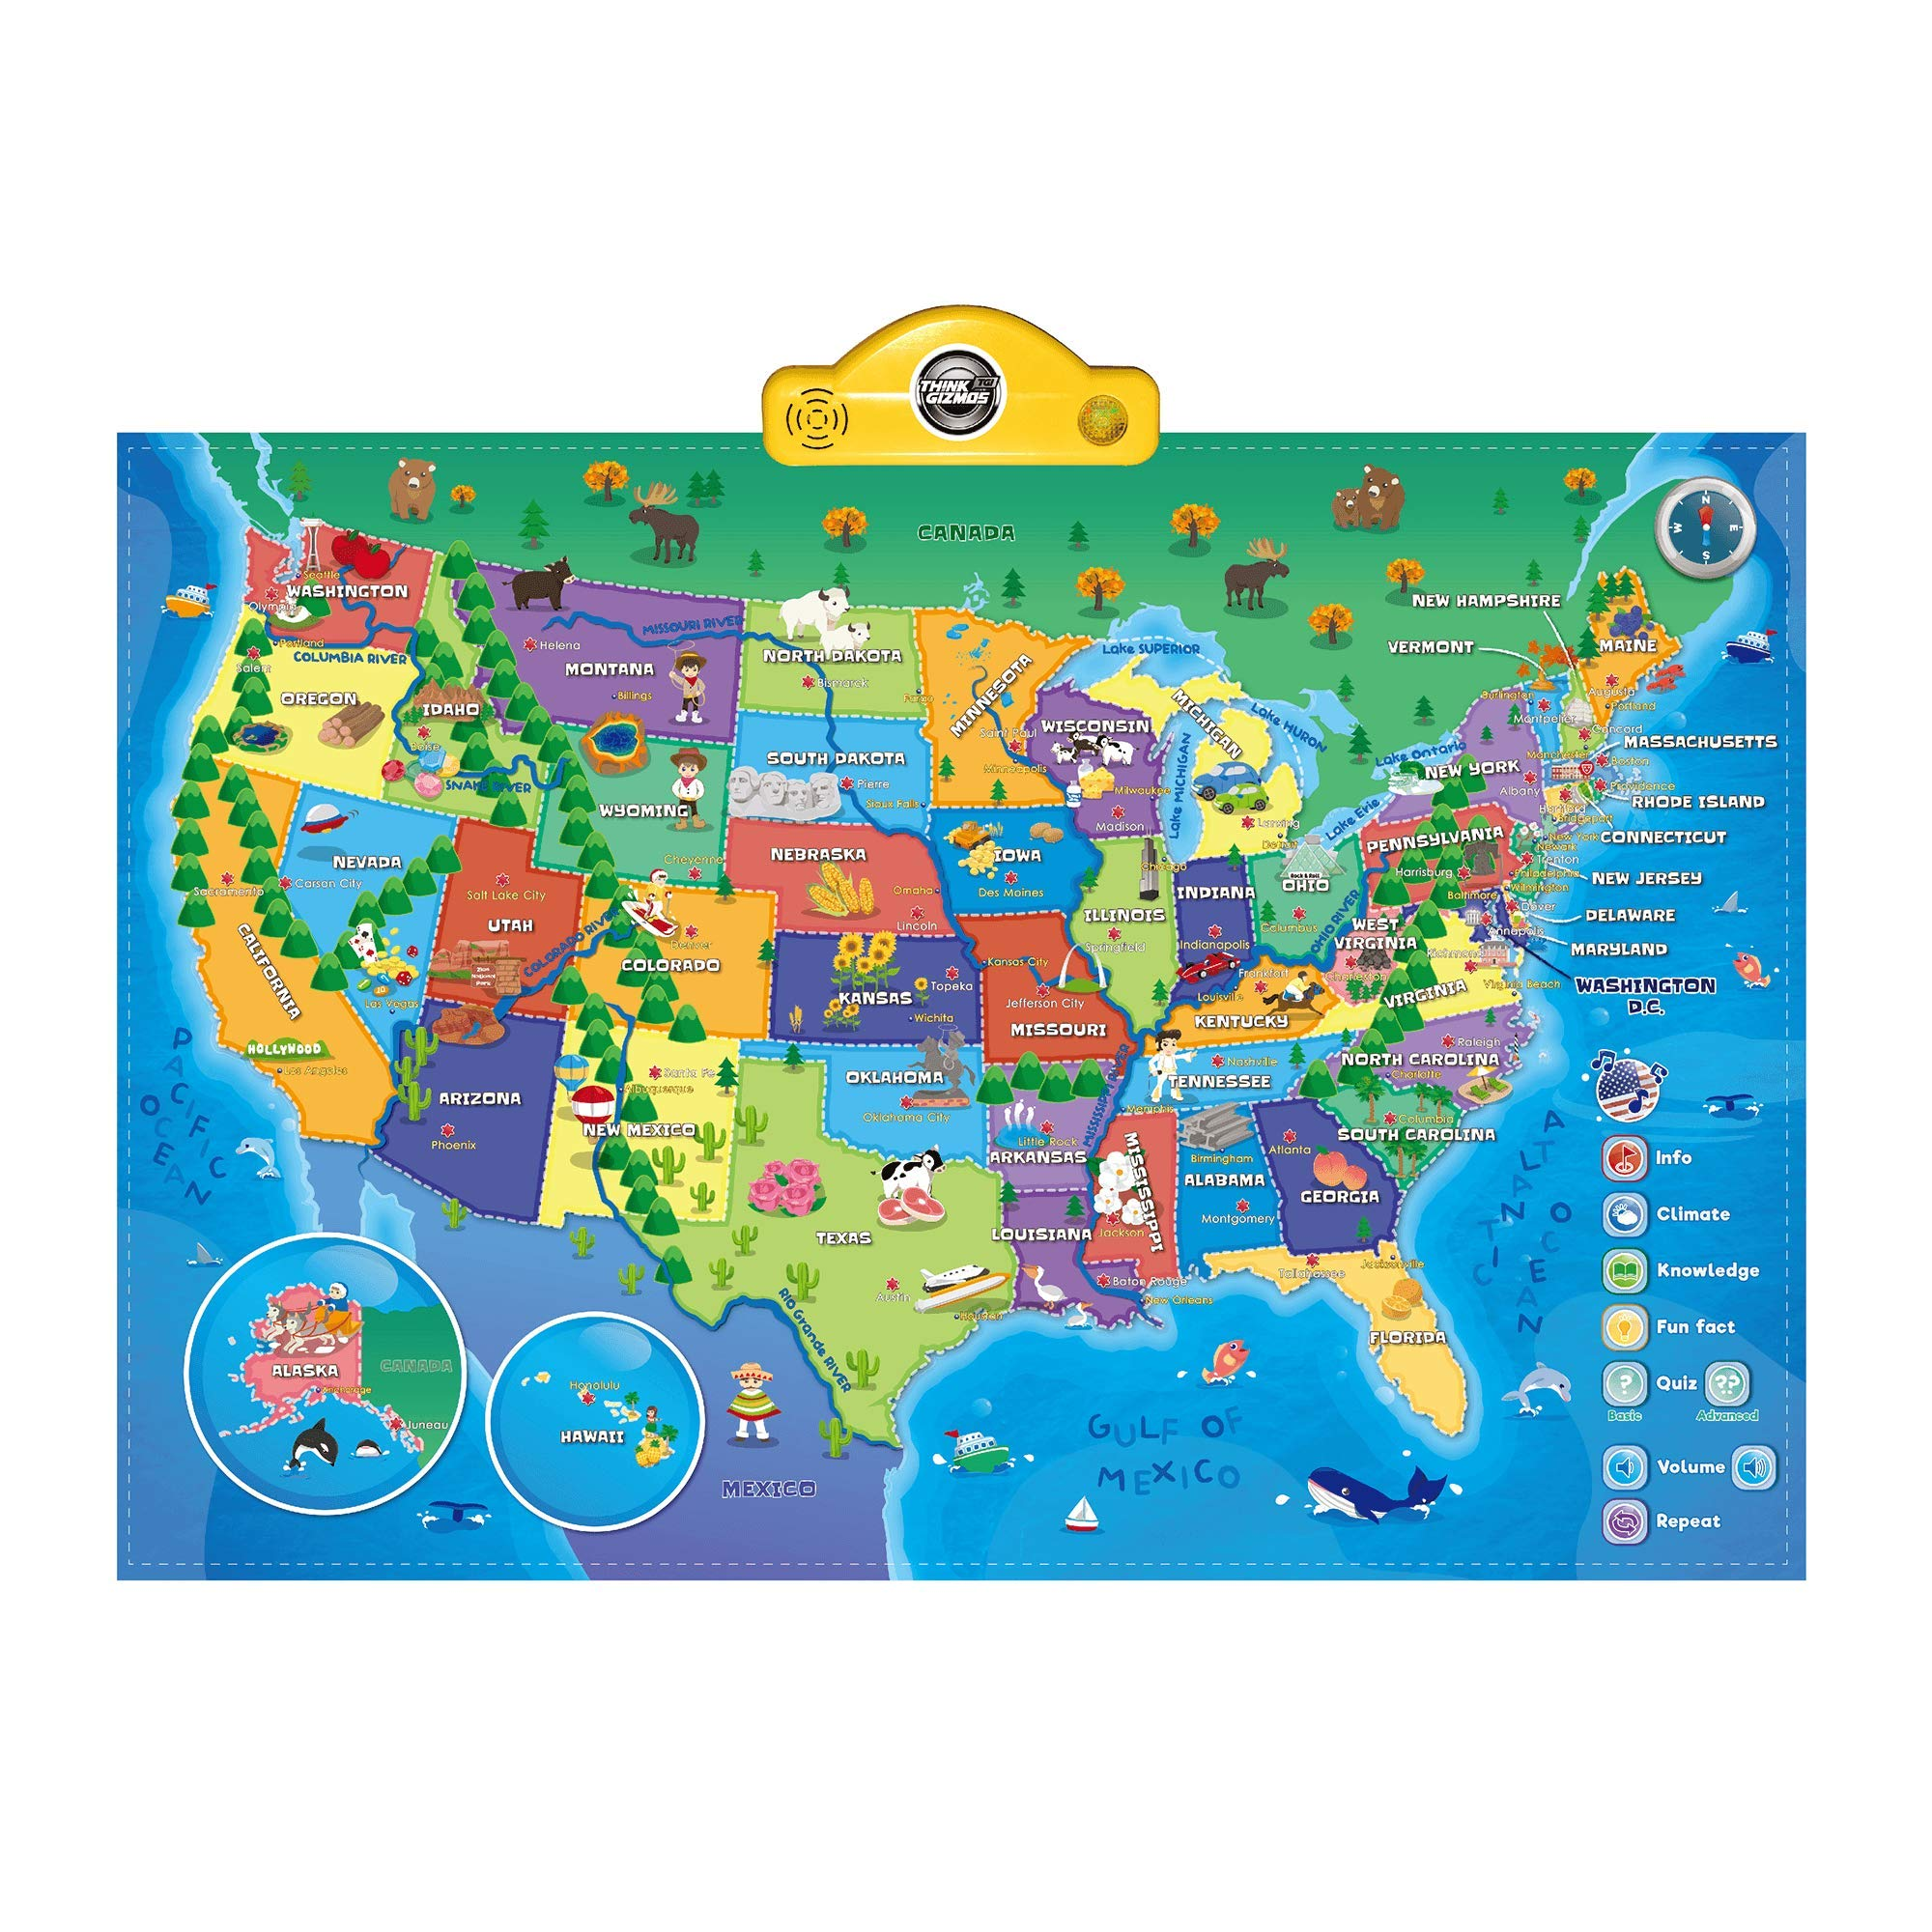 Interactive Talking USA Map for Kids TG660 - Push, Learn and Discover Over 500 Facts About The USA - Fun Educational Interactive Learning Toy Gift for Boys & Girls Aged 5,6,7,8,9,10 - by ThinkGizmos by Think Gizmos